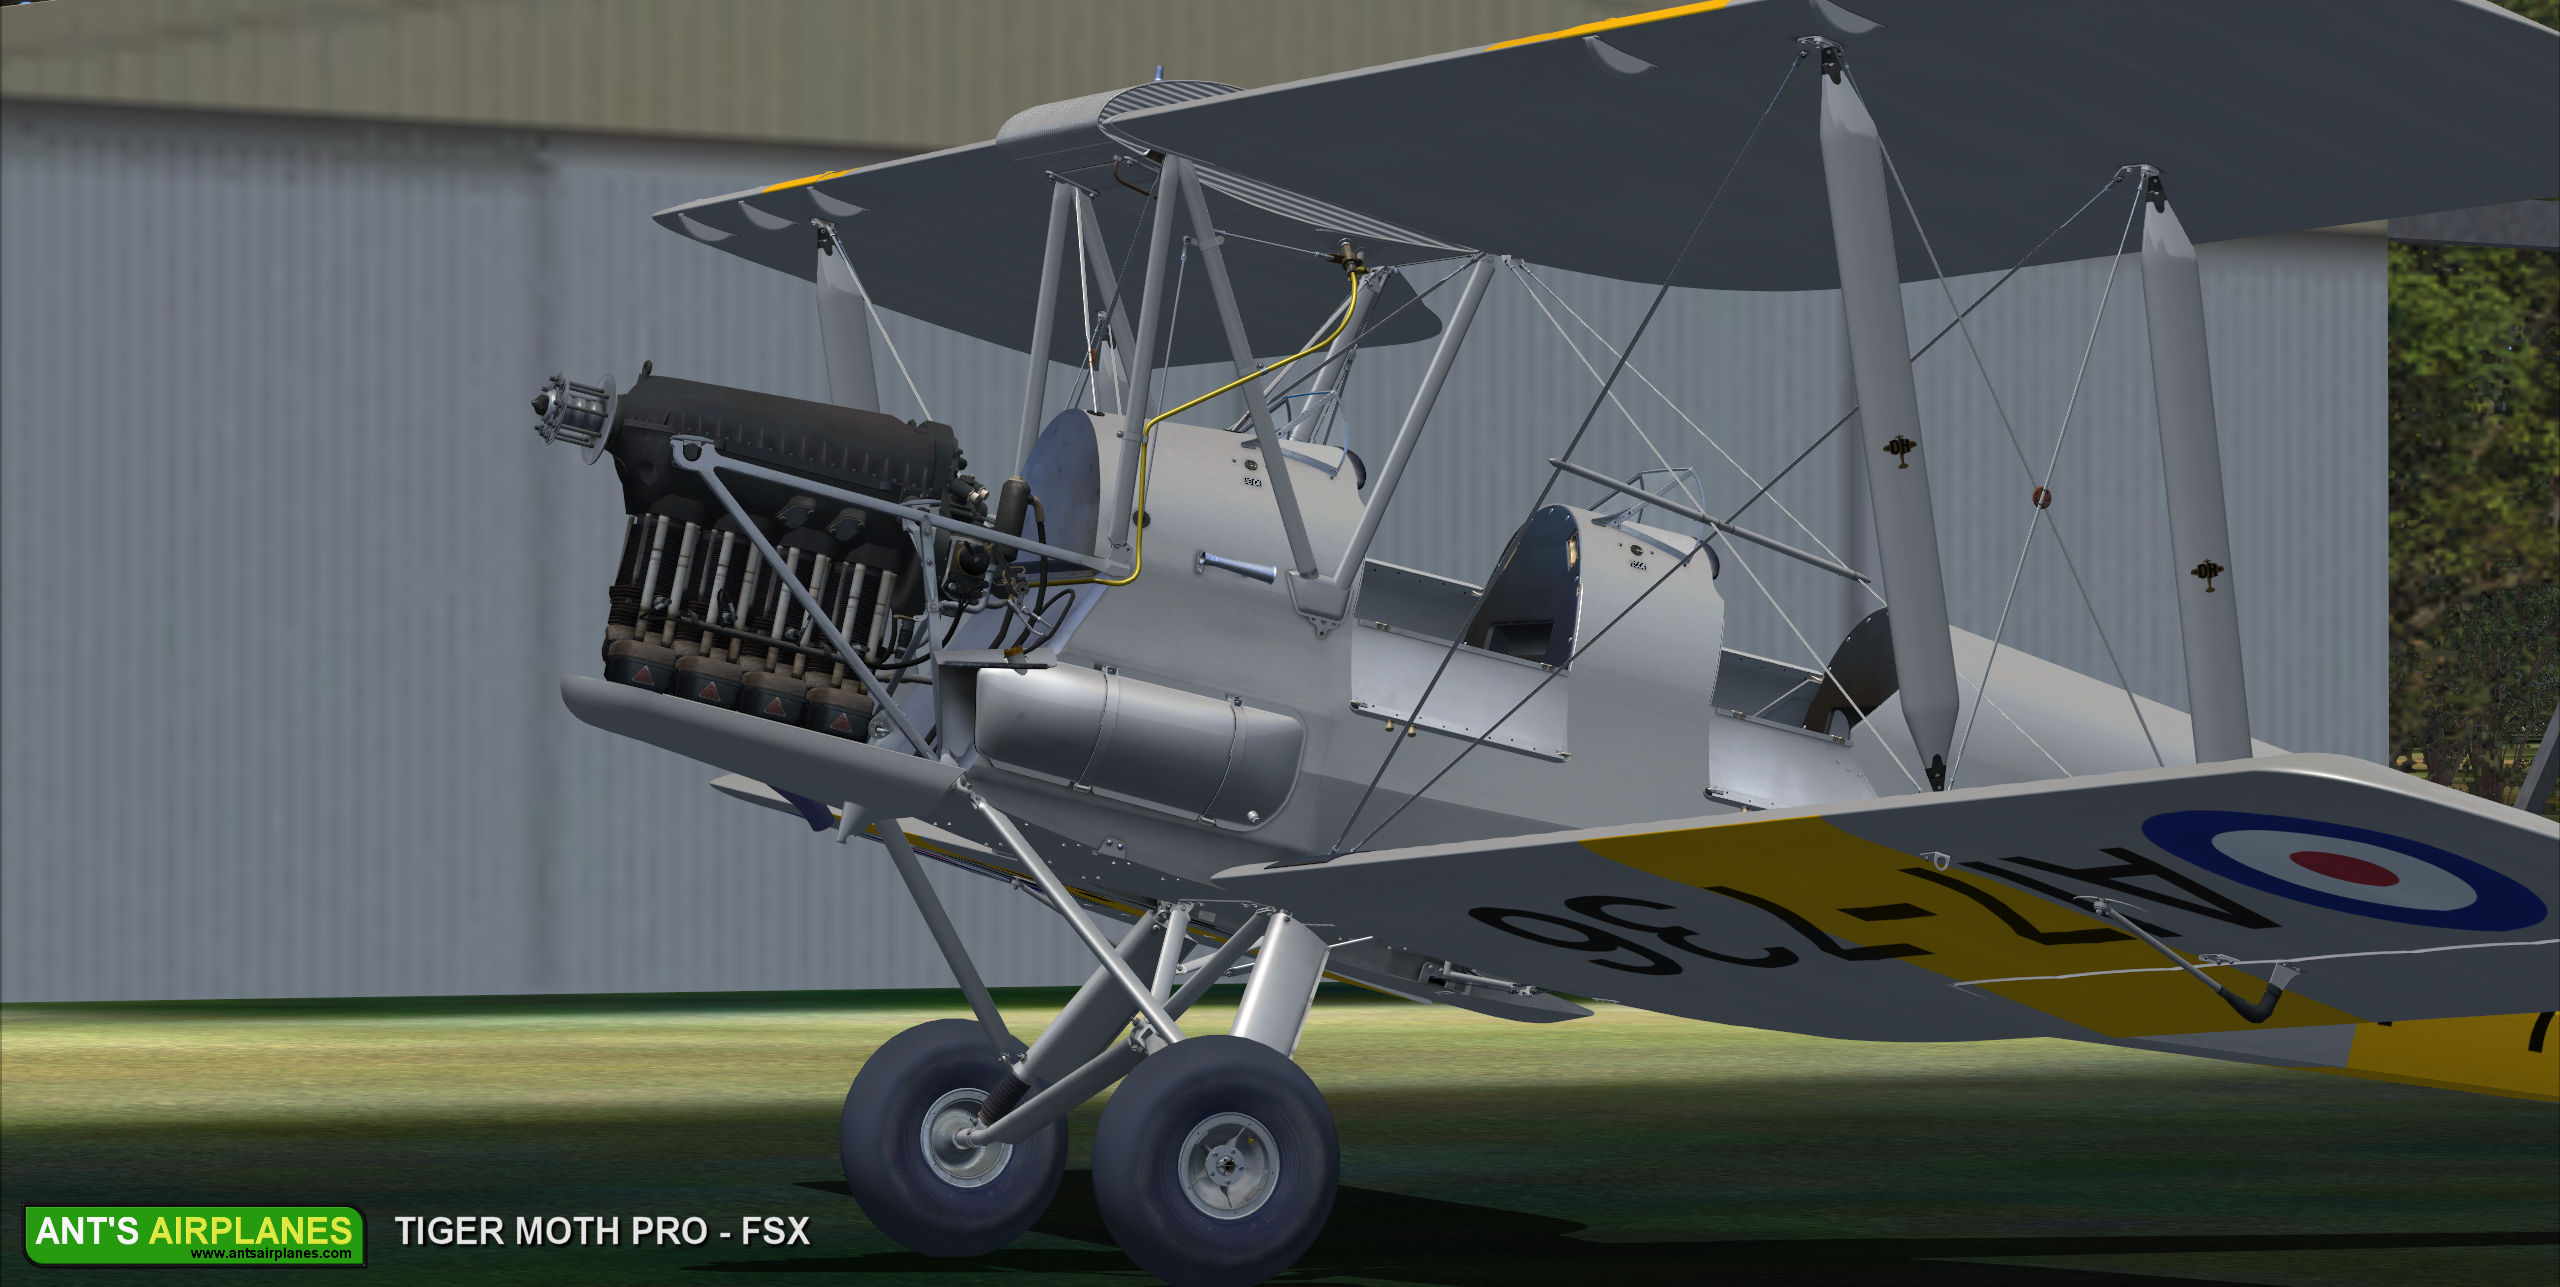 ANTS AIRPLANES - TIGER MOTH PRO FSX P3D